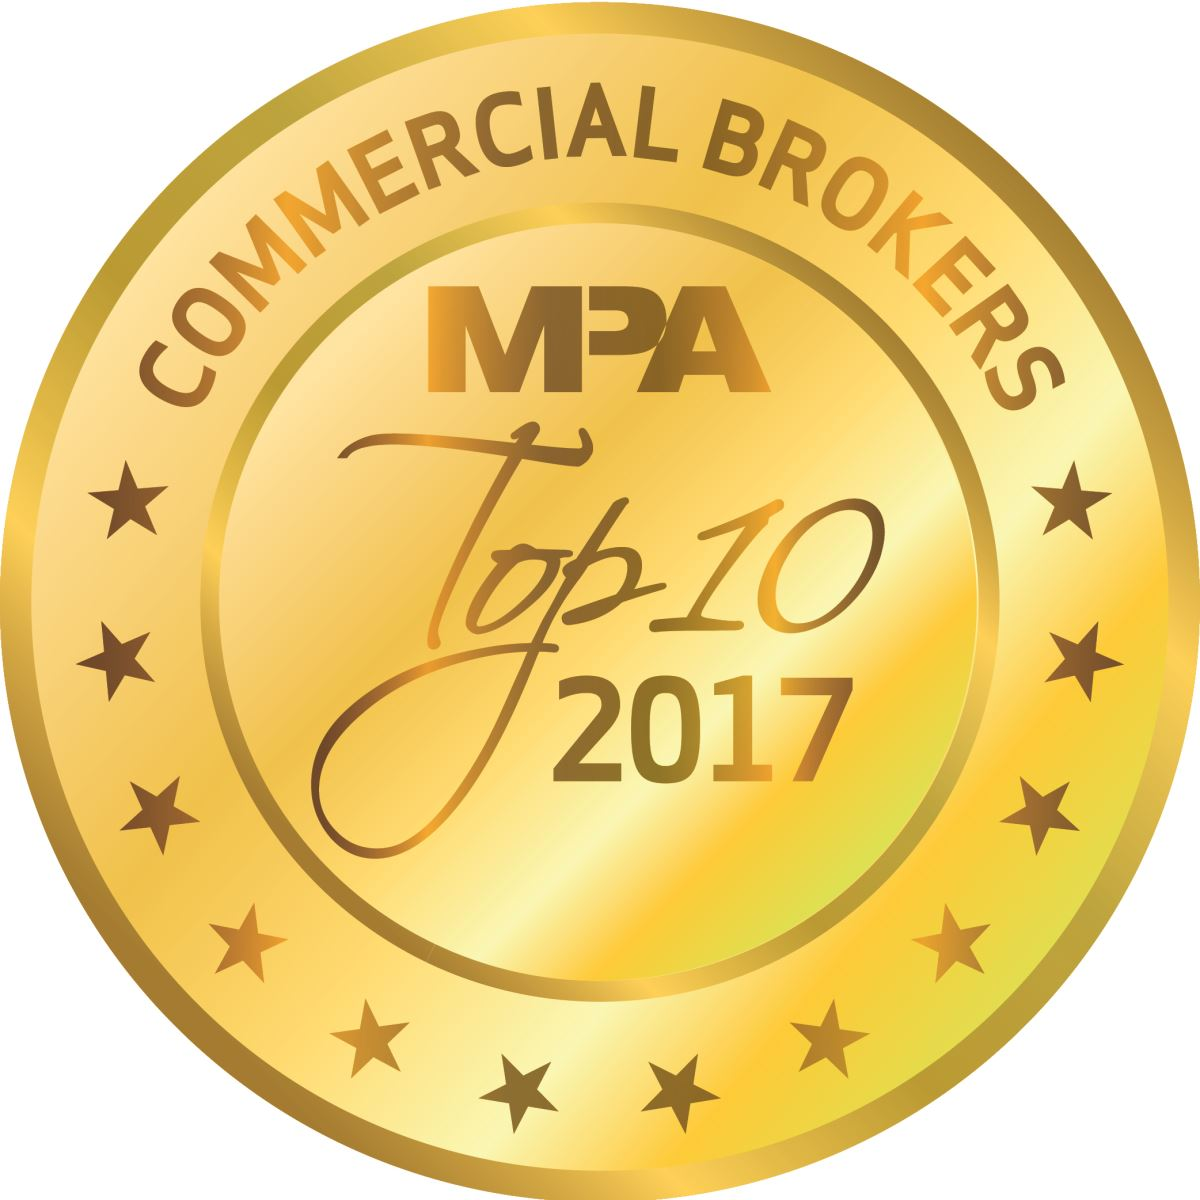 24 hours to be named a Top 10 Commercial Broker